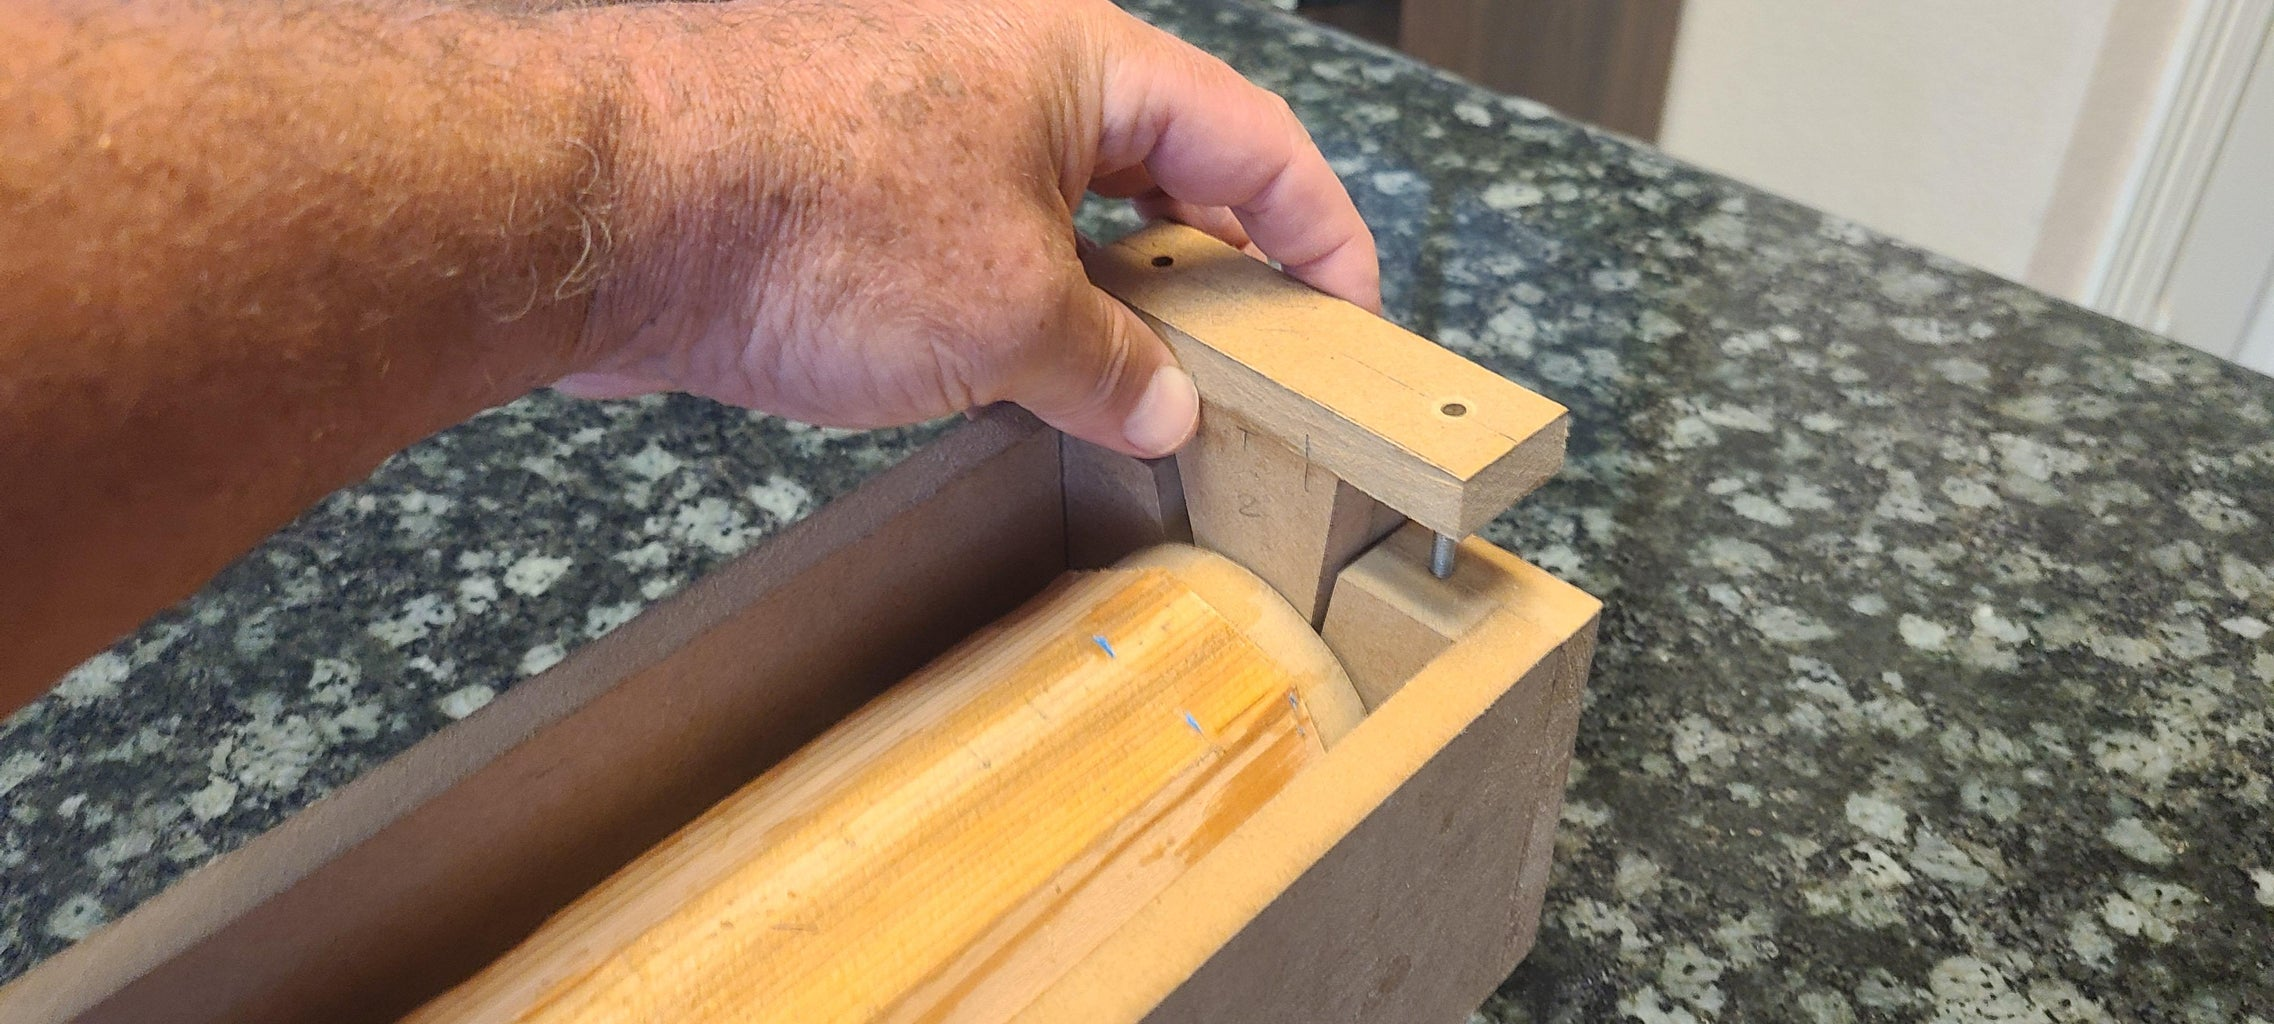 Loading the Octagonal Blank Into the Jig